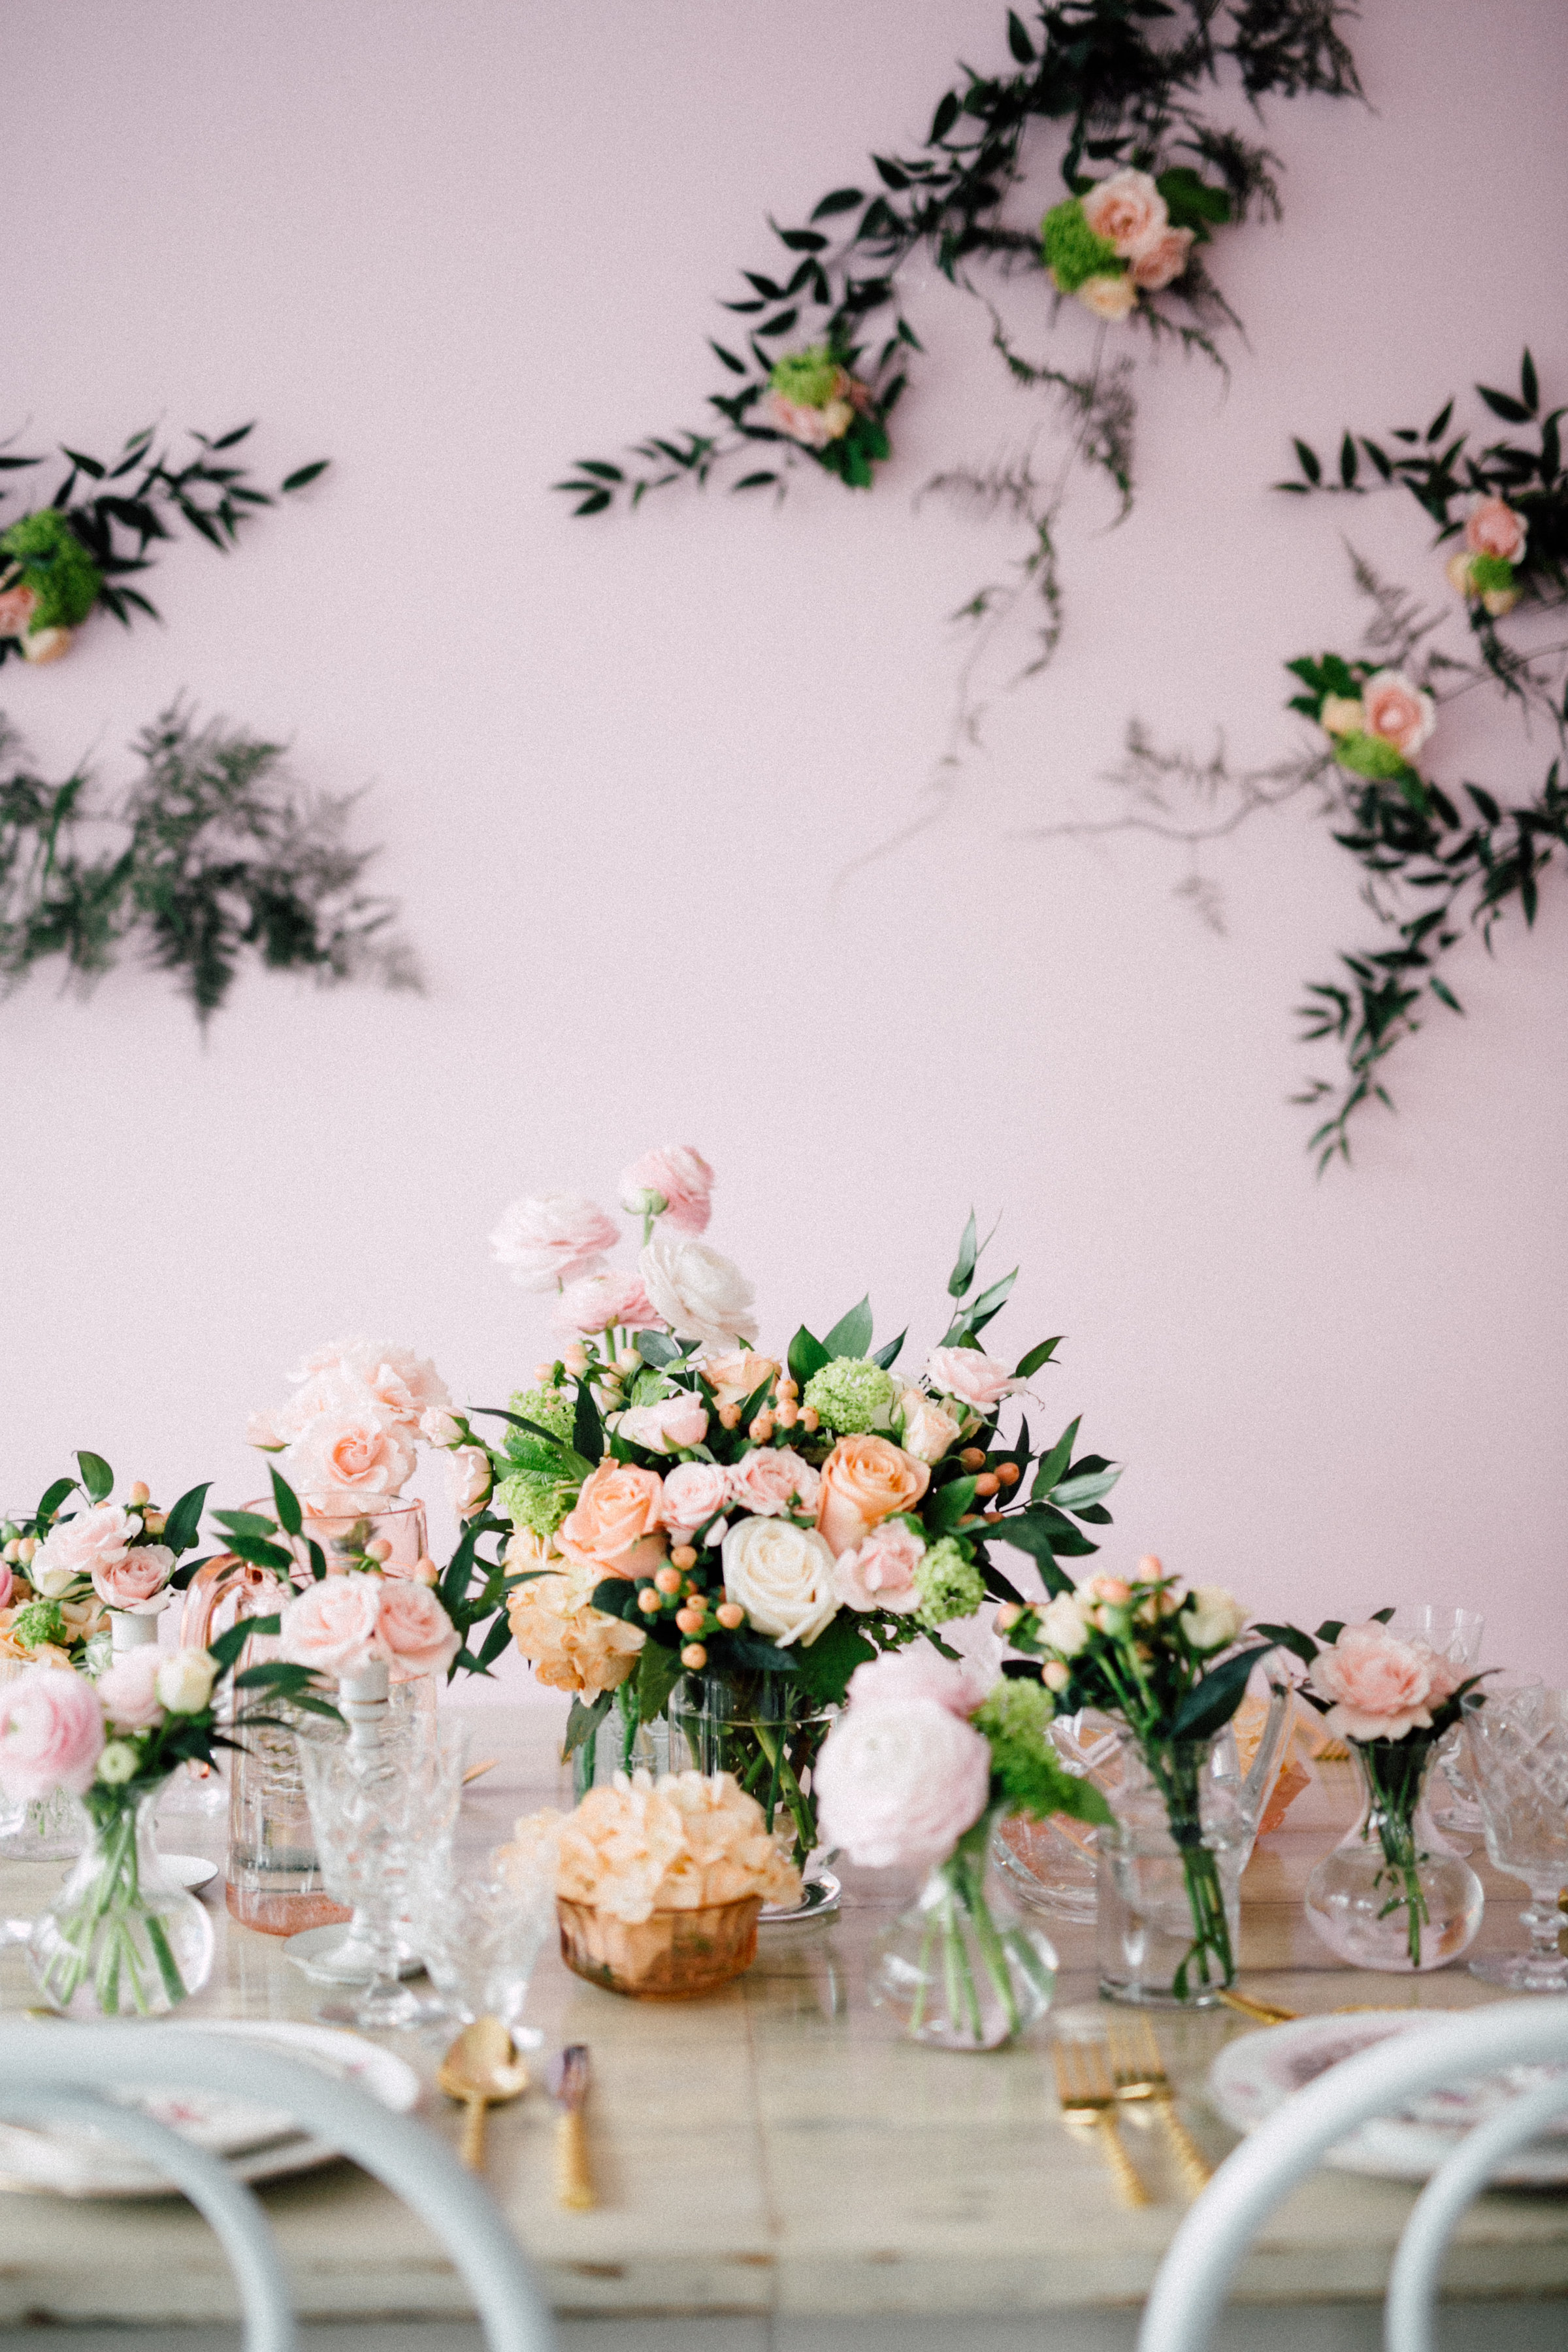 August In Bloom - Pastel tablescape - Bun In The Oven Baby Shower (Style Me Pretty & SMP Living)